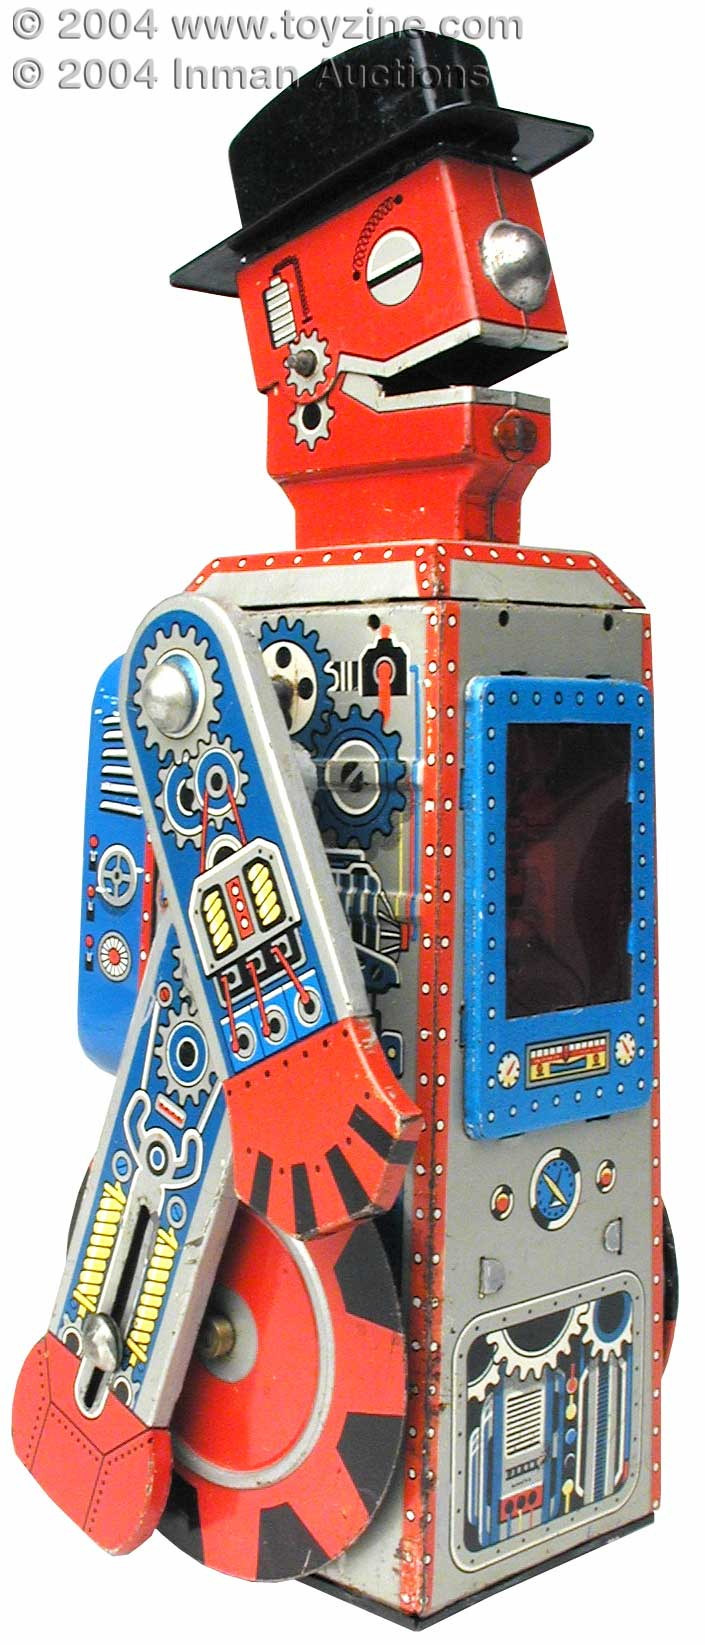 Japanese Tin Toy Robots : Tinplate japanese robot mego man tin toy f h